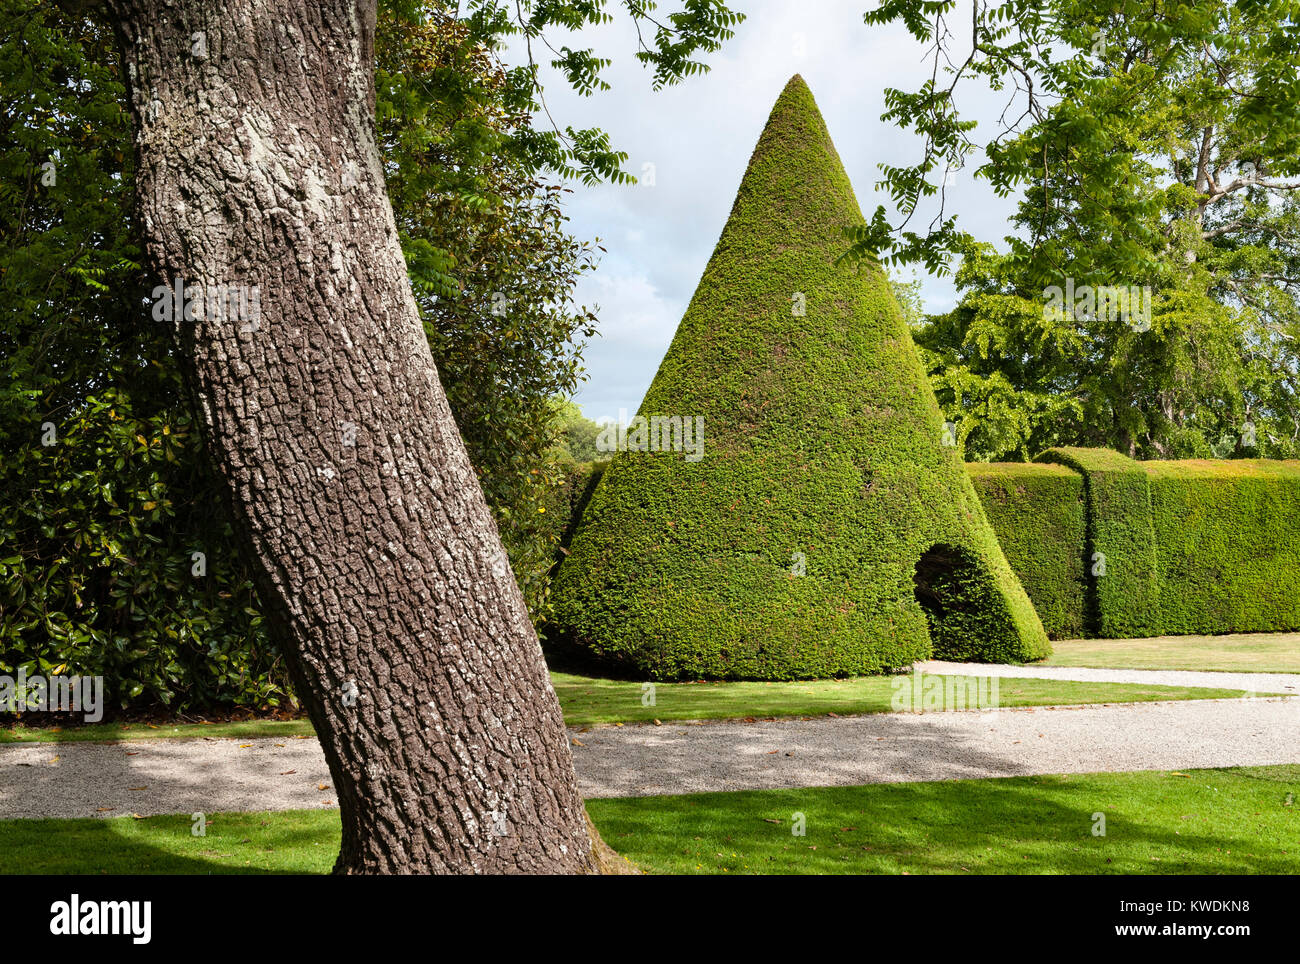 Antony House, Torpoint, Cornwall, UK. A 10m high topiary cone in clipped yew in the formal gardens near this 18c - Stock Image